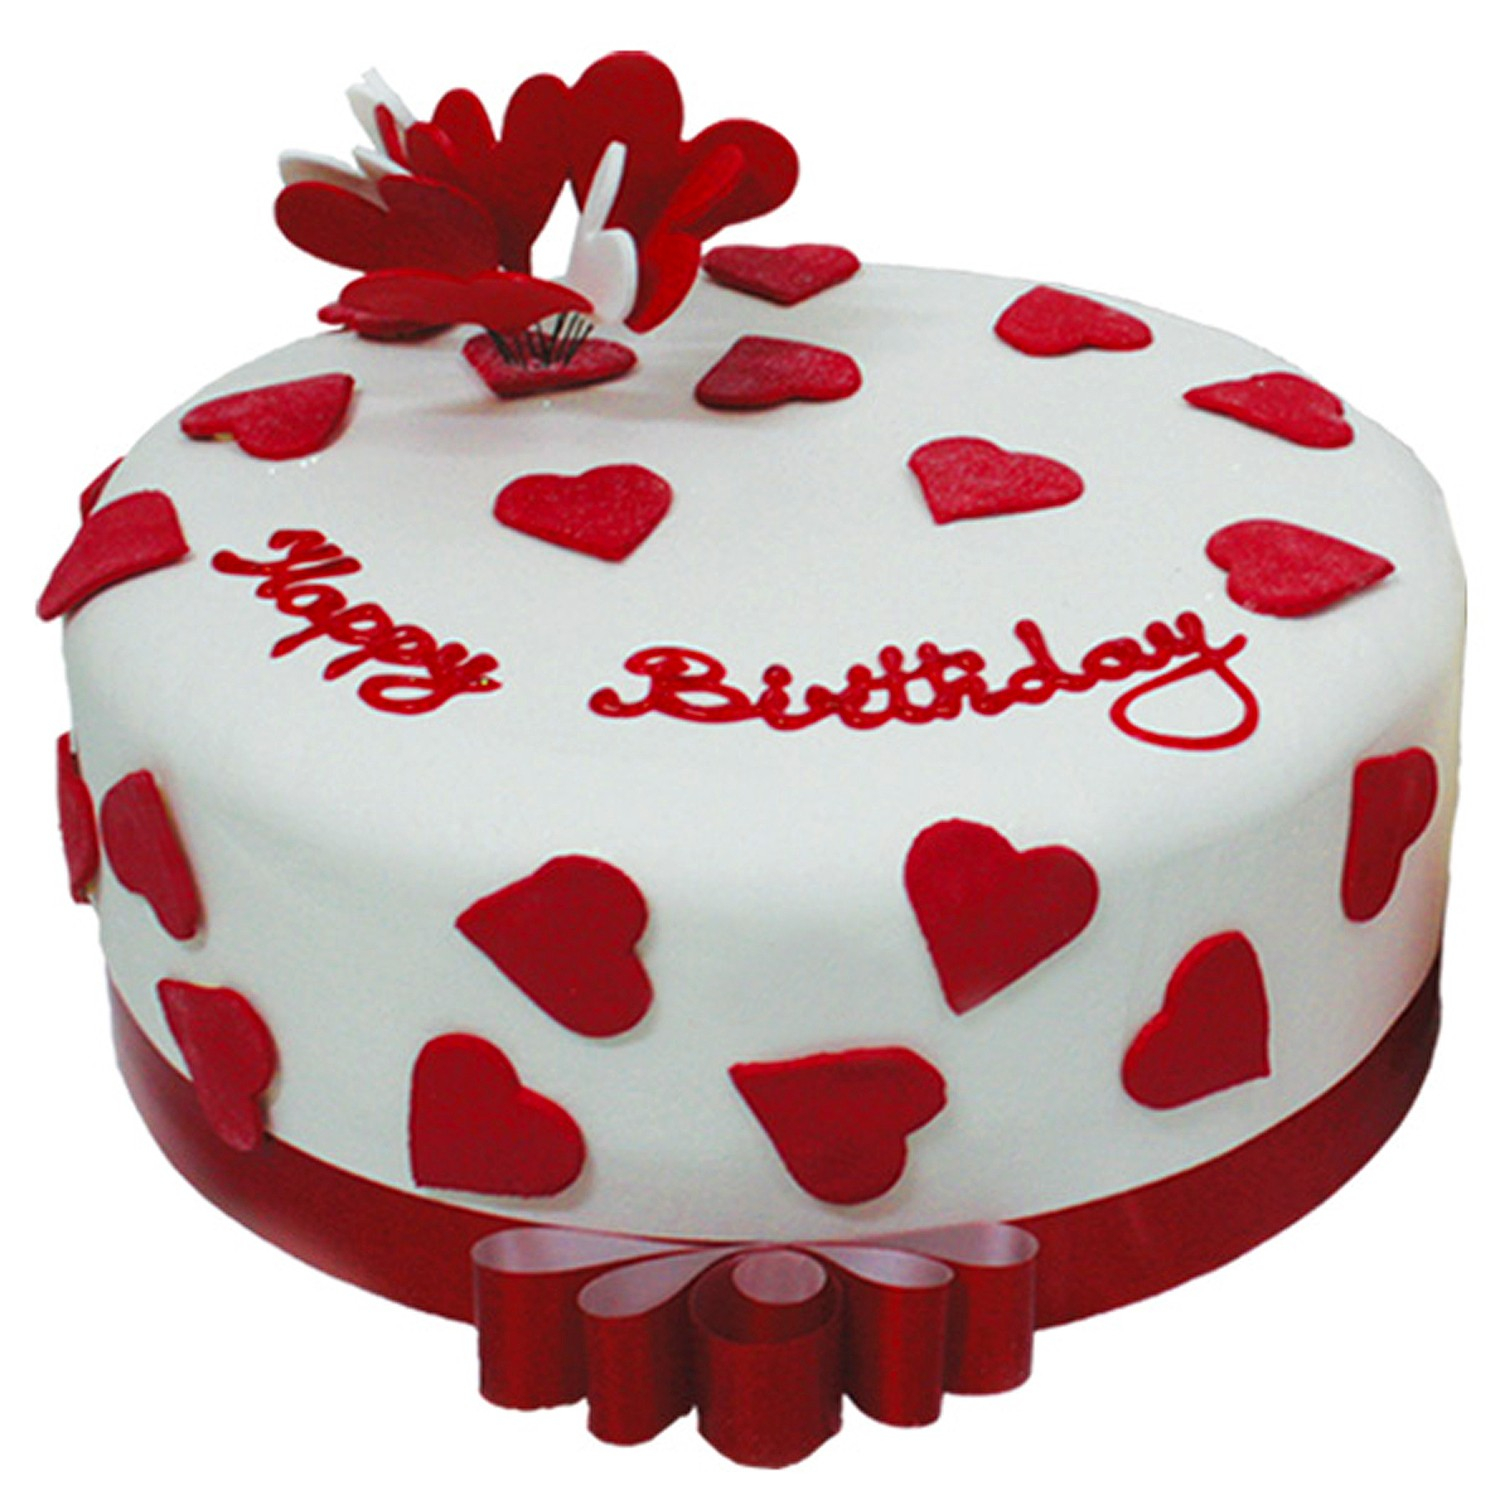 Birthday Cake Pic Download Free Birthday Cake Photos Download Free Clip Art Free Clip Art On